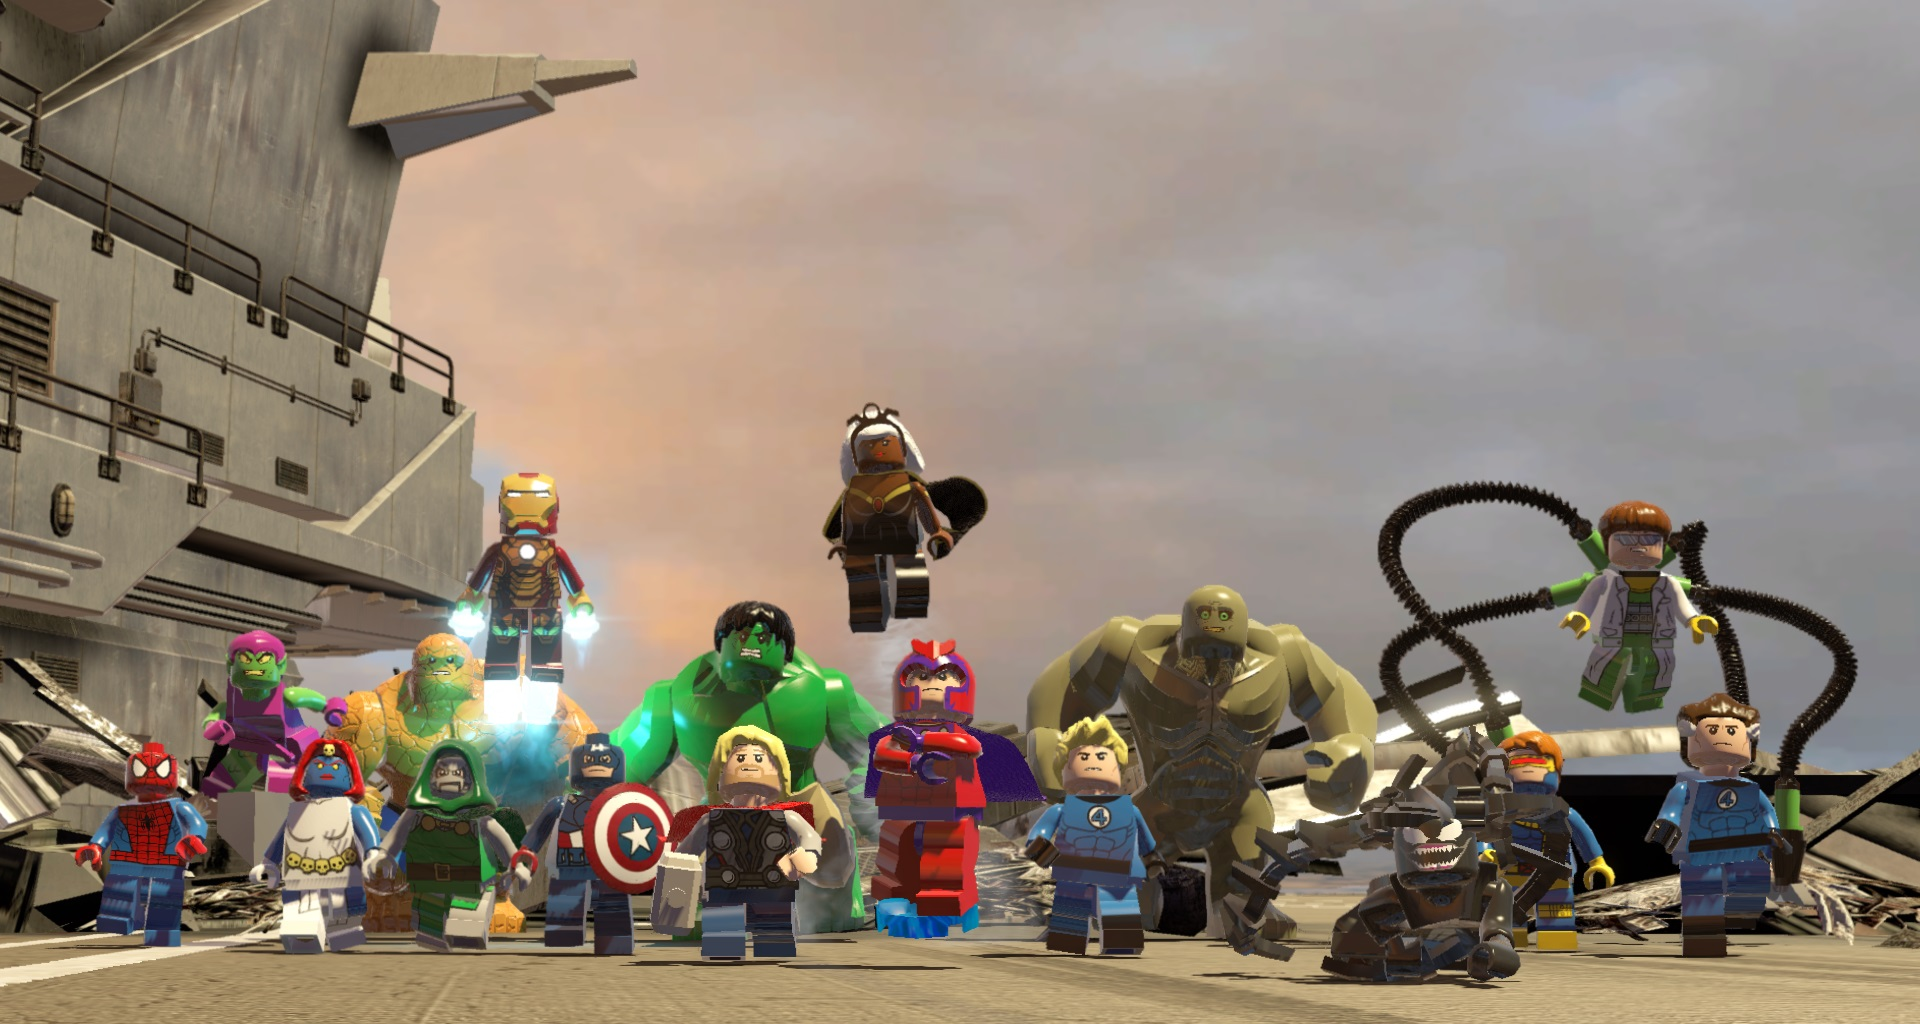 legomarvel_review_main_1920 Recap - Hugh Thomas's Top 10 Games of 2013